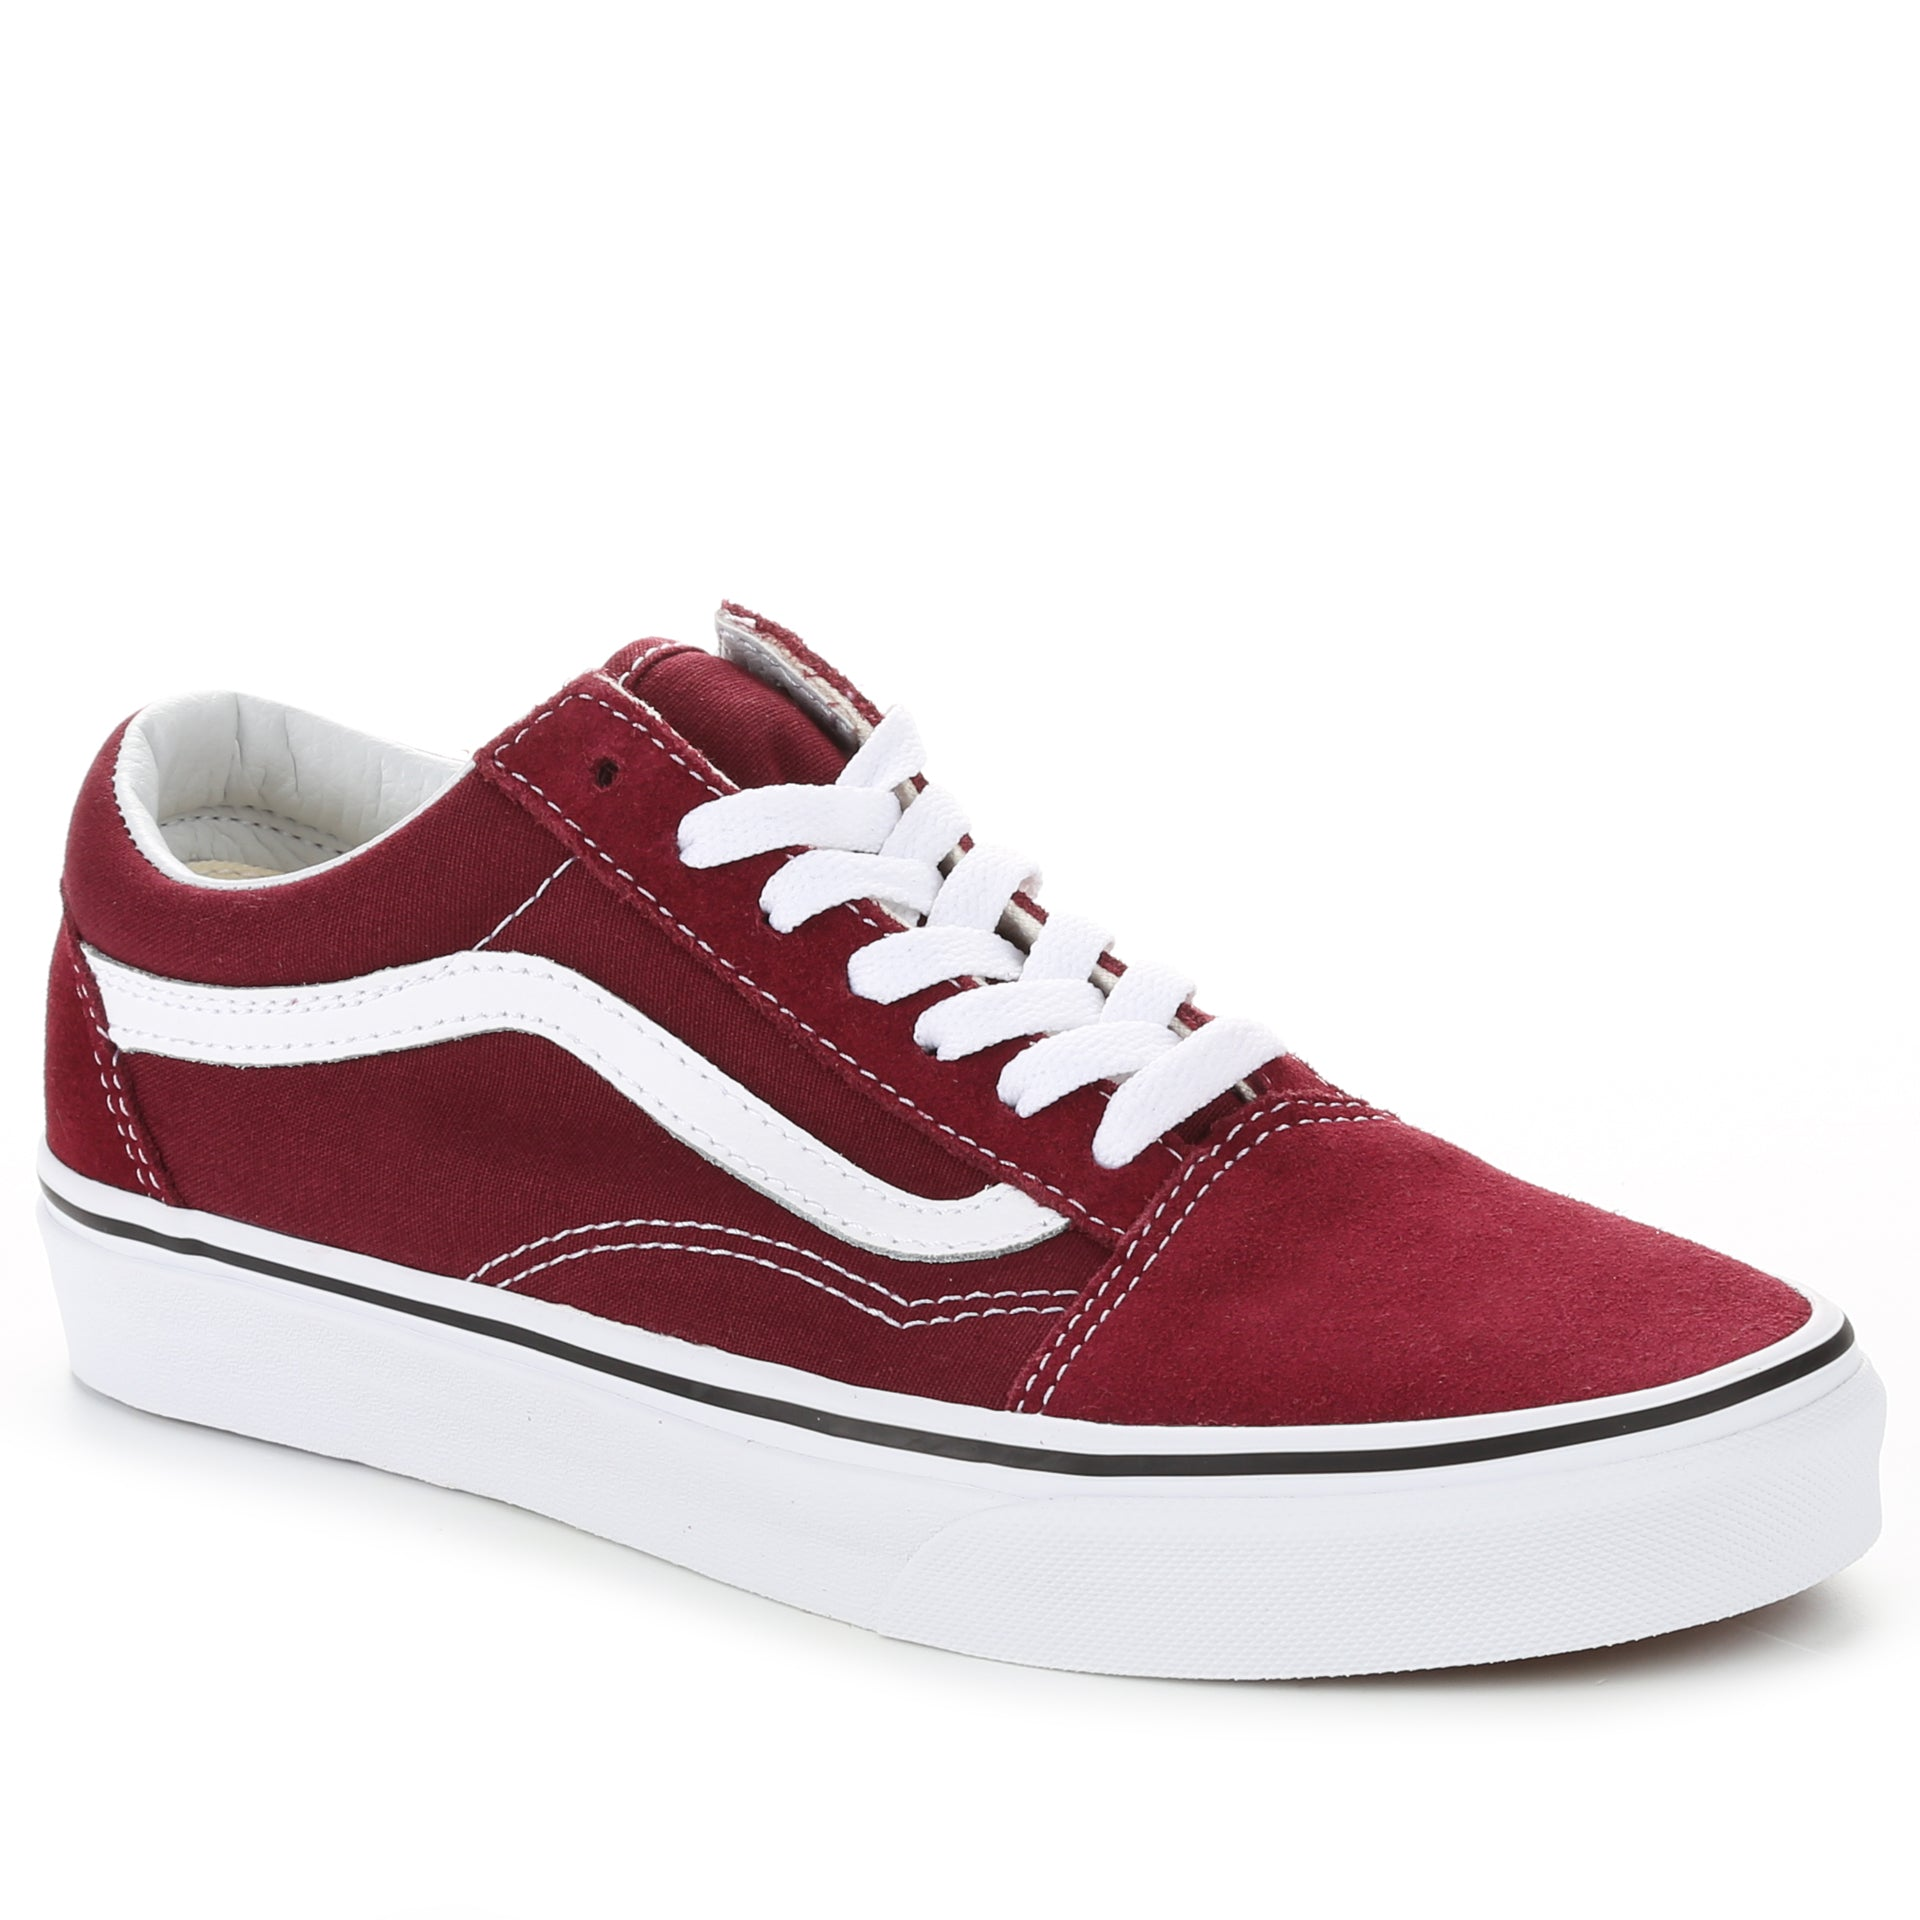 timeless design variety design new photos Vans Old Skool - Burgundy/True White